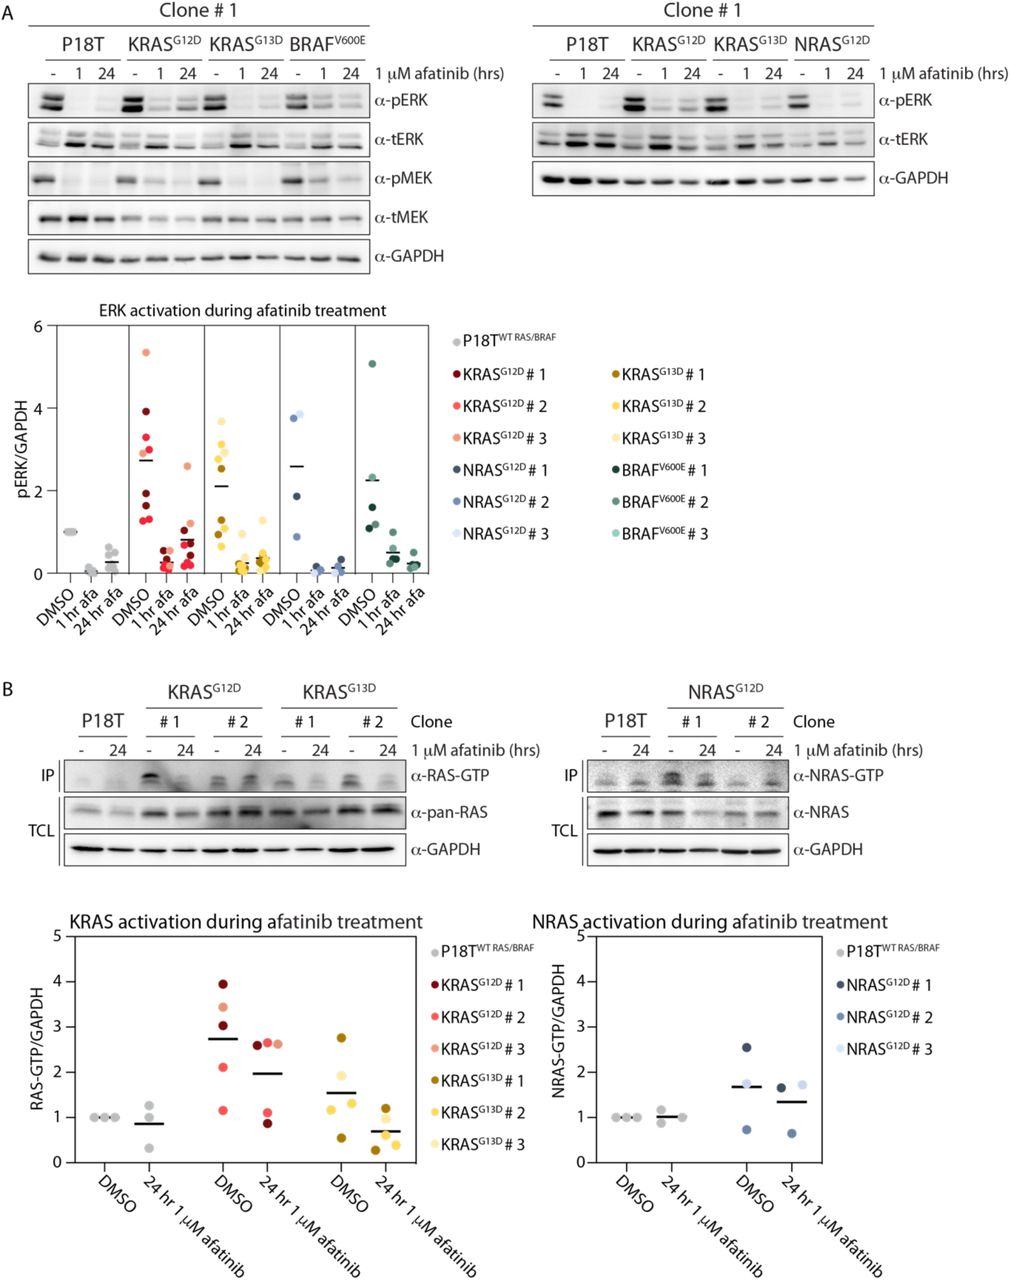 KRAS G12D and BRAF V600E RPM lines show residual MAPK pathway activity in the presence of pan-HER inhibition. ( A ) Organoids expressing oncogenic KRAS (G12D and G13D), NRAS (G12D) and BRAF (V600E) variants show enhanced basal ERK phosphorylation levels compared to P18T organoids. Pan-HER inhibition (1 µM afatinib) shows sustained ERK and MEK phosphorylation in KRAS G12D and BRAF V600E organoids compared to P18T, KRAS G13D and NRAS G12D organoids. Top panels are representative biochemistry experiments on clone # 1 from n=3. Bottom scatter plot depicts ERK phosphorylation levels normalized to GAPDH for all clones (n≥4). Baseline of P18T (DMSO) is set at 1. ( B ) Top panels depict biochemistry on RAS activity (GTP-loading) in unperturbed culture conditions and pan-HER inhibition (1 µM afatinib) for KRAS (G12D and G13D) and NRAS (G12D) mutant clones # 1 and 2 compared to P18T CRC organoids. RAS immunoblots from RAS pull-down assay are shown (RAS-GTP), together with a RAS immunoblot from total cell lysates as loading control. HRAS, KRAS, and NRAS isoforms are detected in mutant KRAS pull-down assays. NRAS isoforms are detected in mutant NRAS pull-down assays. Representative from n = 3 independent experiments. Scatter plots below depict RAS-GTP levels normalized to GAPDH for all clones (n≥3). Baseline of P18T (DMSO) is set at 1.